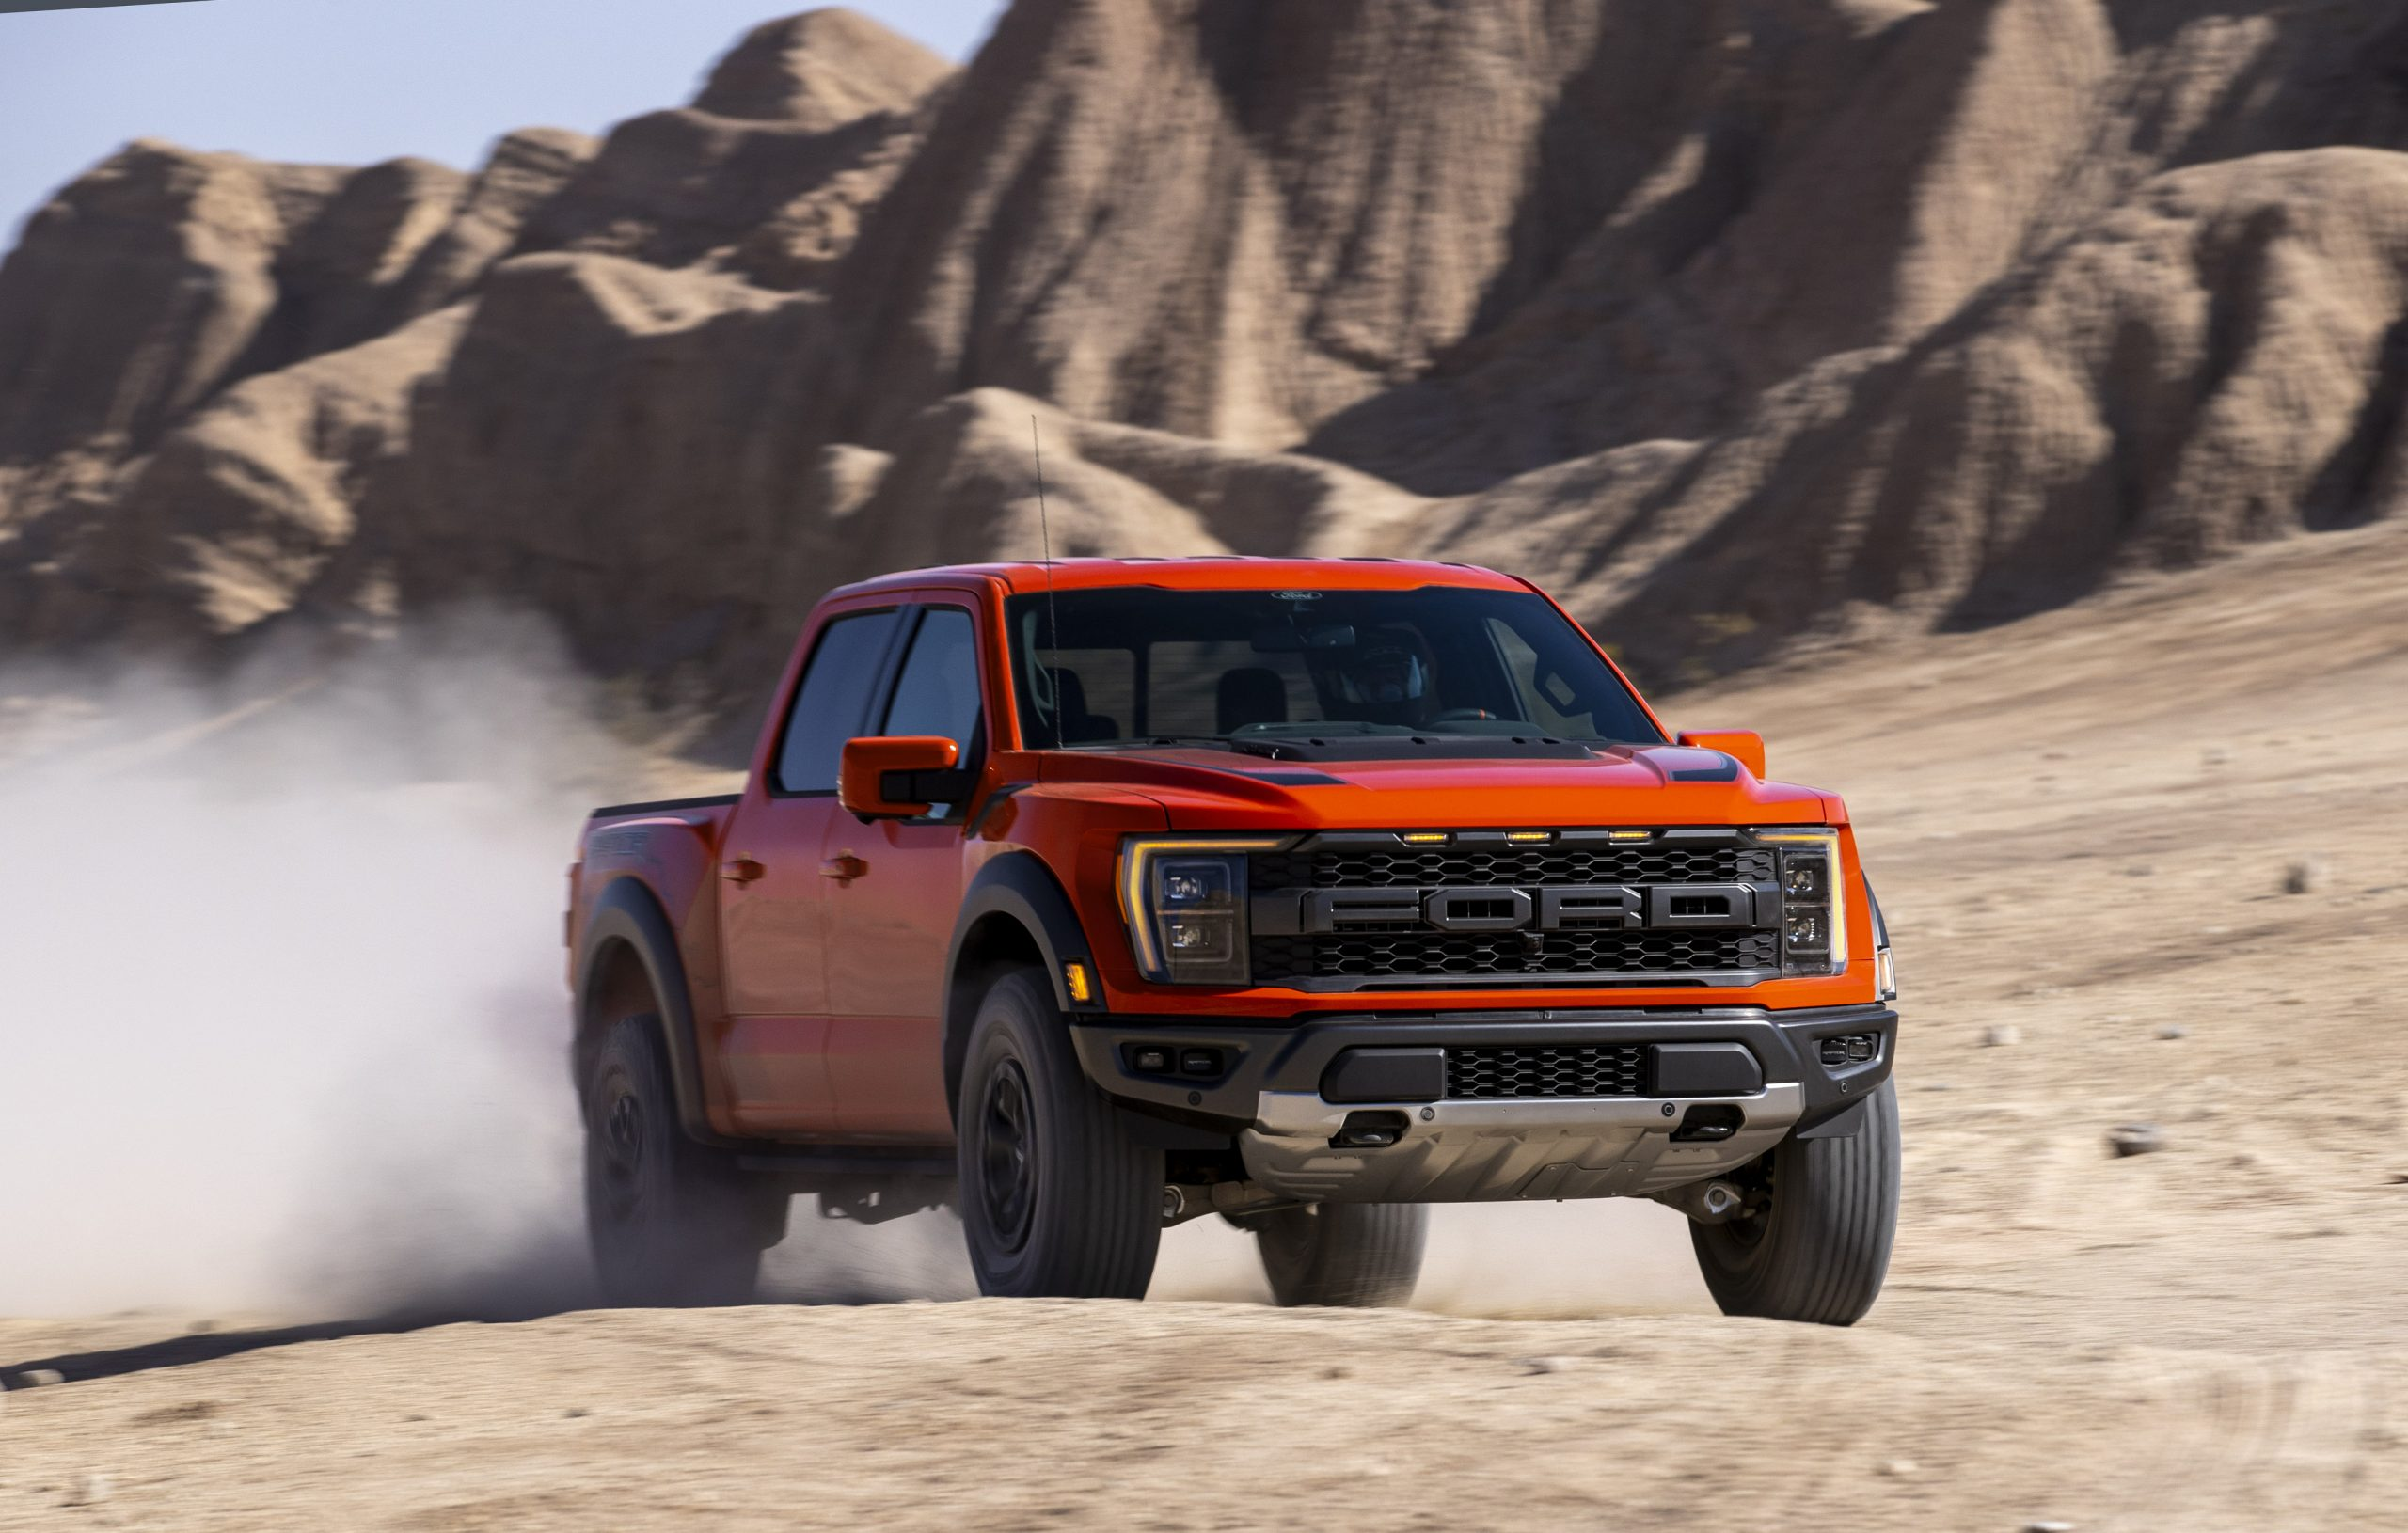 Desert predator: Ford unleashes the all new F-150 Raptor